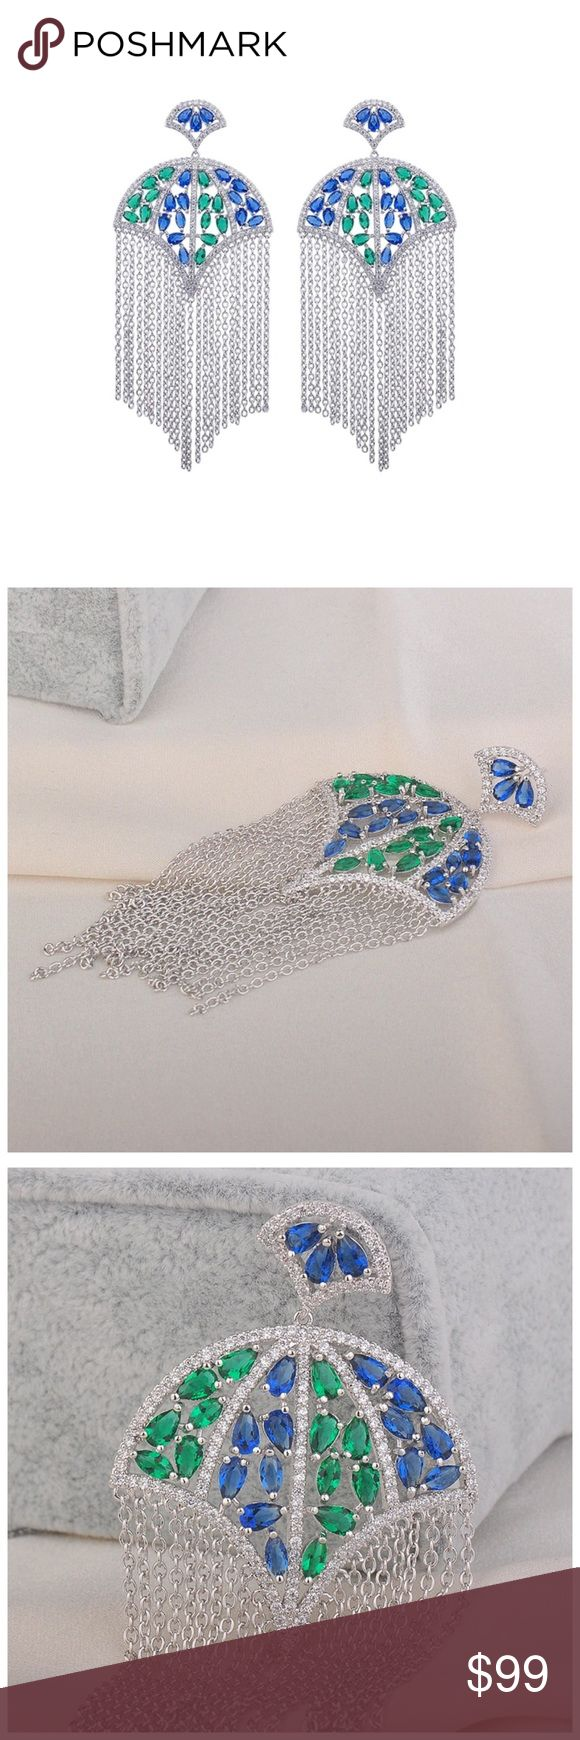 🆕 Swarovski Crystals The Nayola Earrings S26 ‼️10% DISCOUNT ON BUNDLES OF...